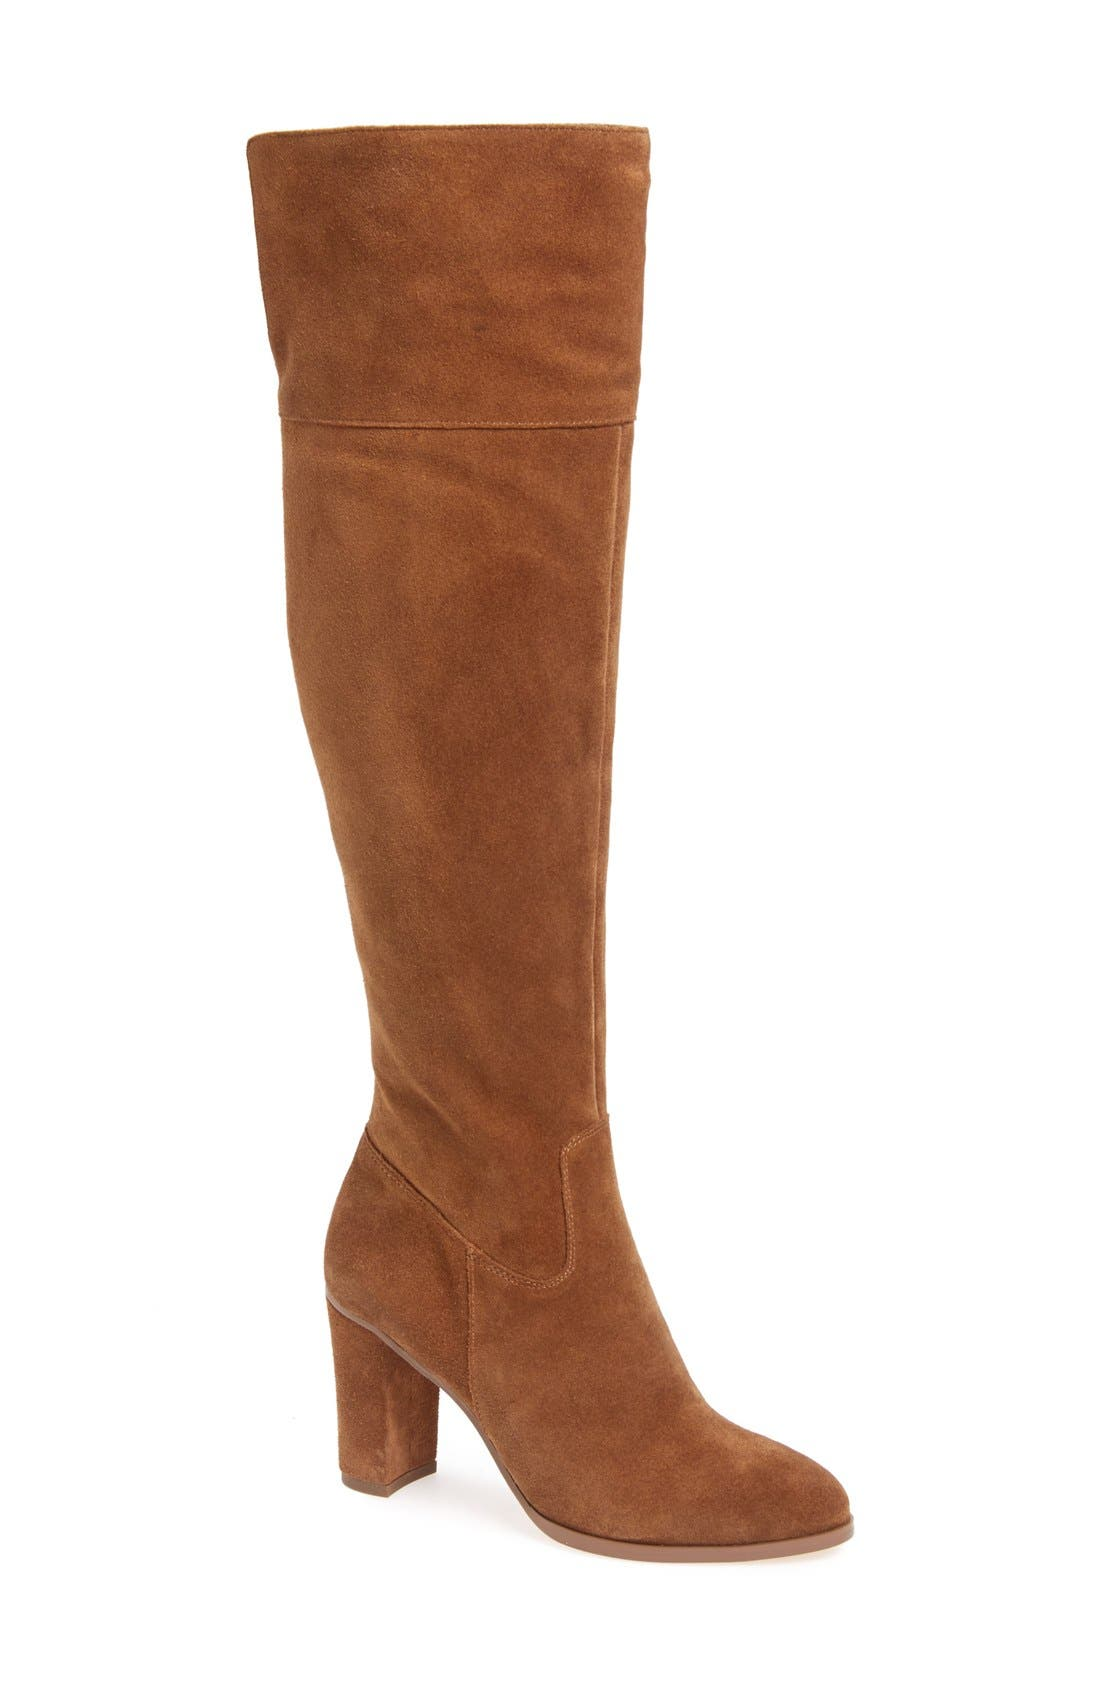 ARTURO CHIANG 'Mikayla' Over the Knee Boot